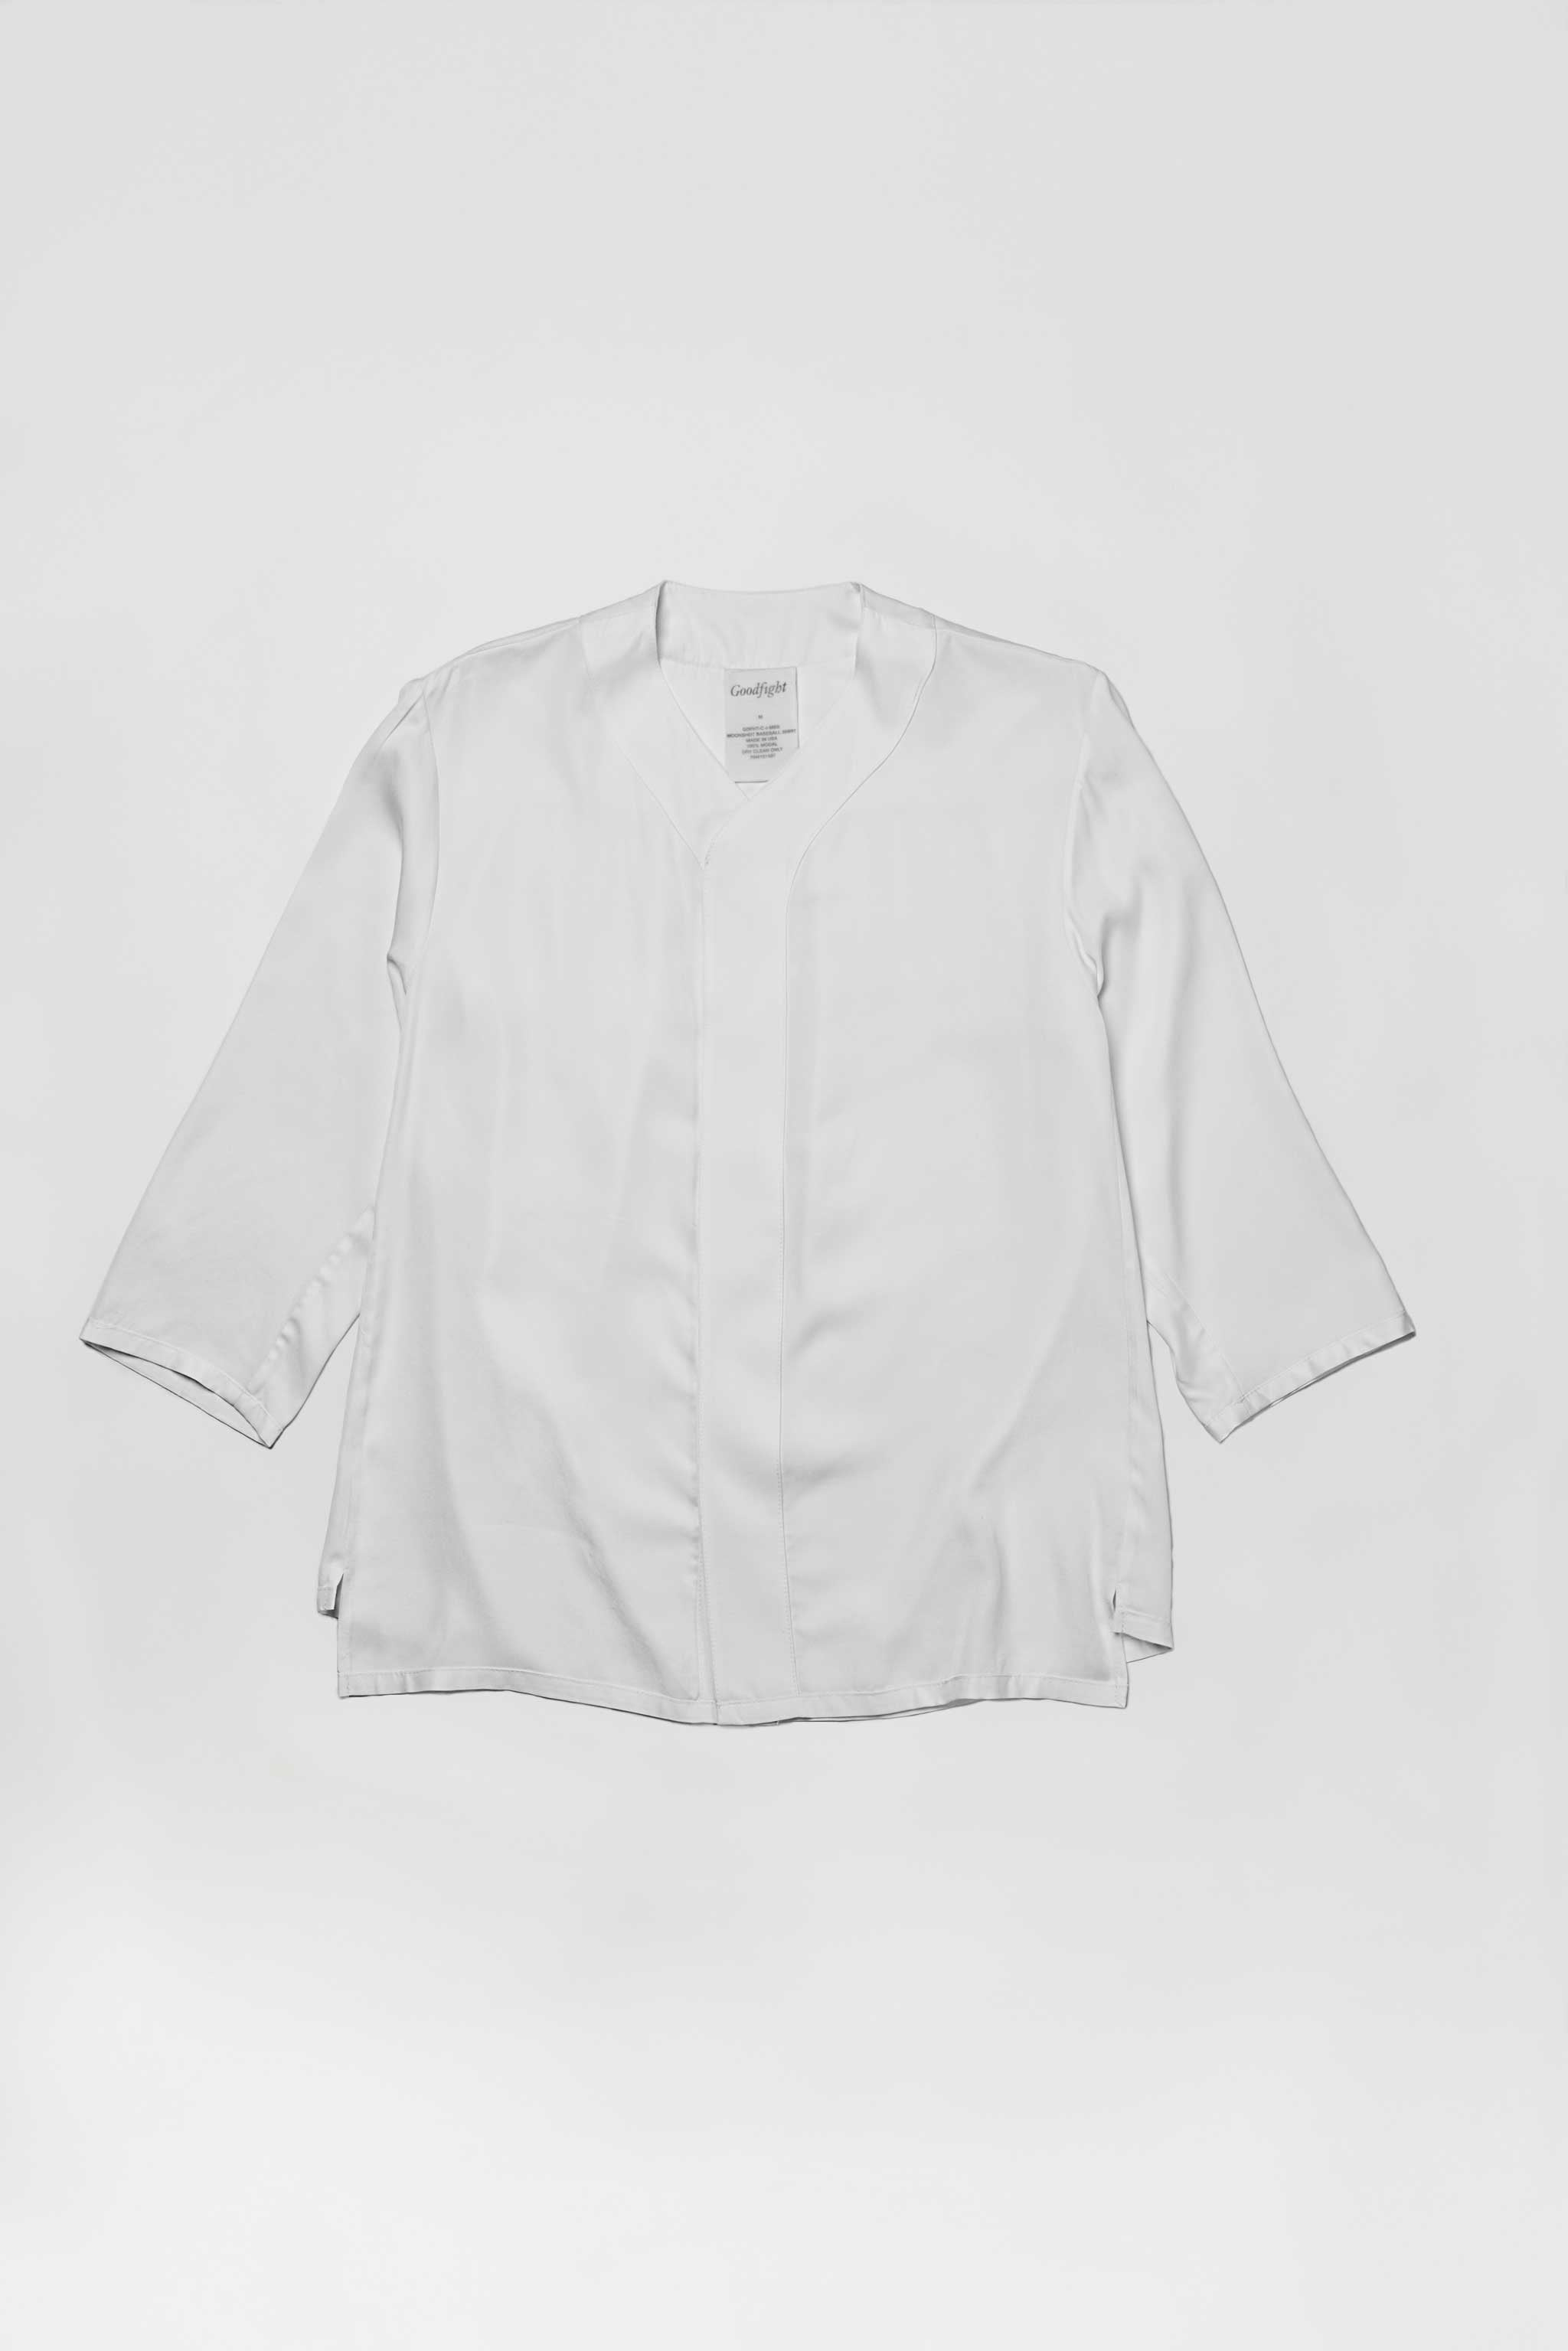 Goodfight Moonshot Baseball Shirt White